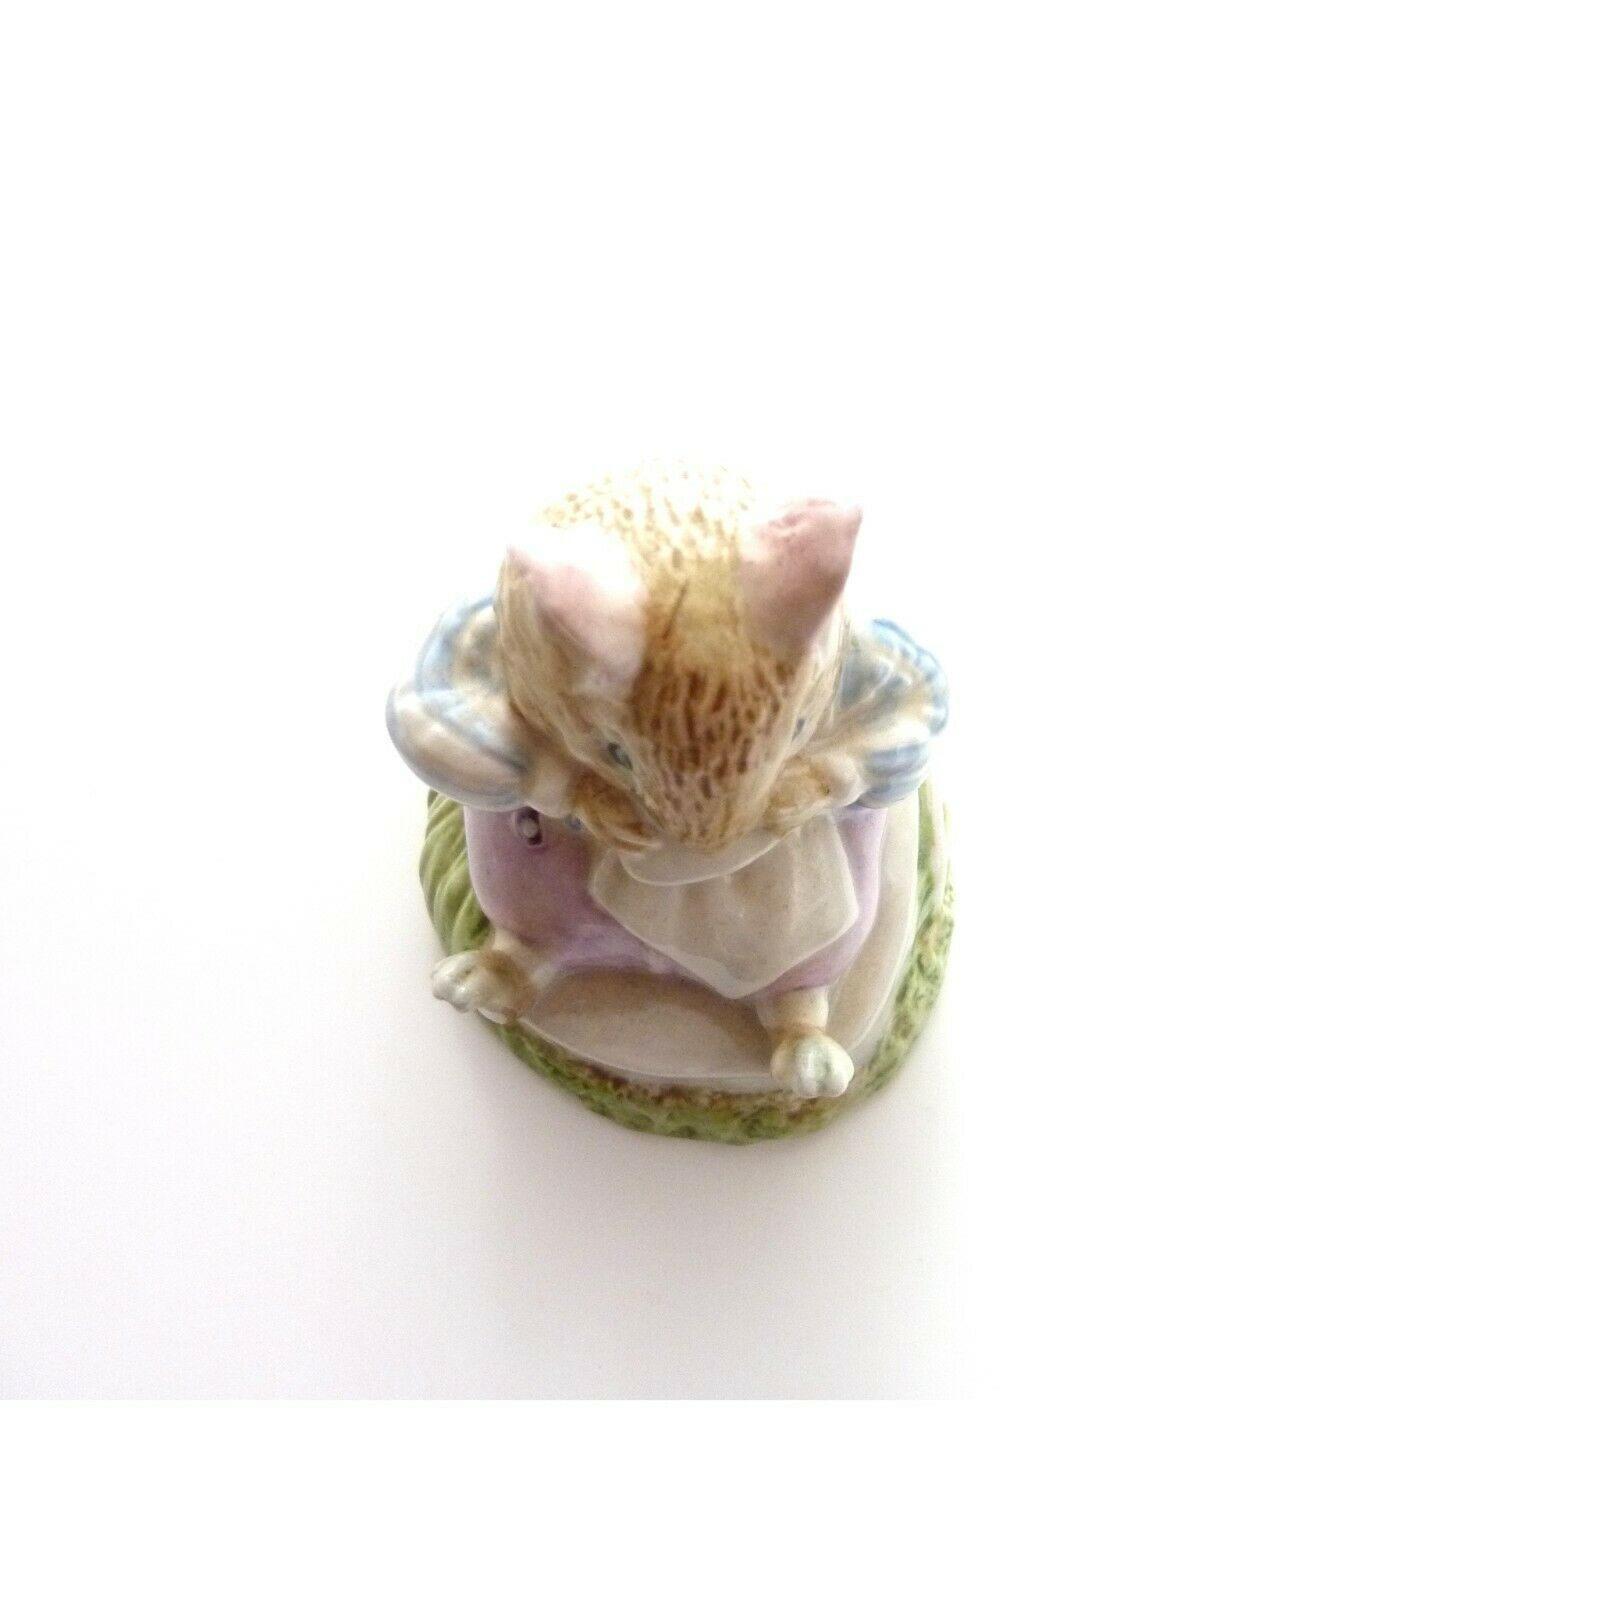 Vintage Mr Toadflax, no cushion, tail on side Royal Doulton figurine image 2